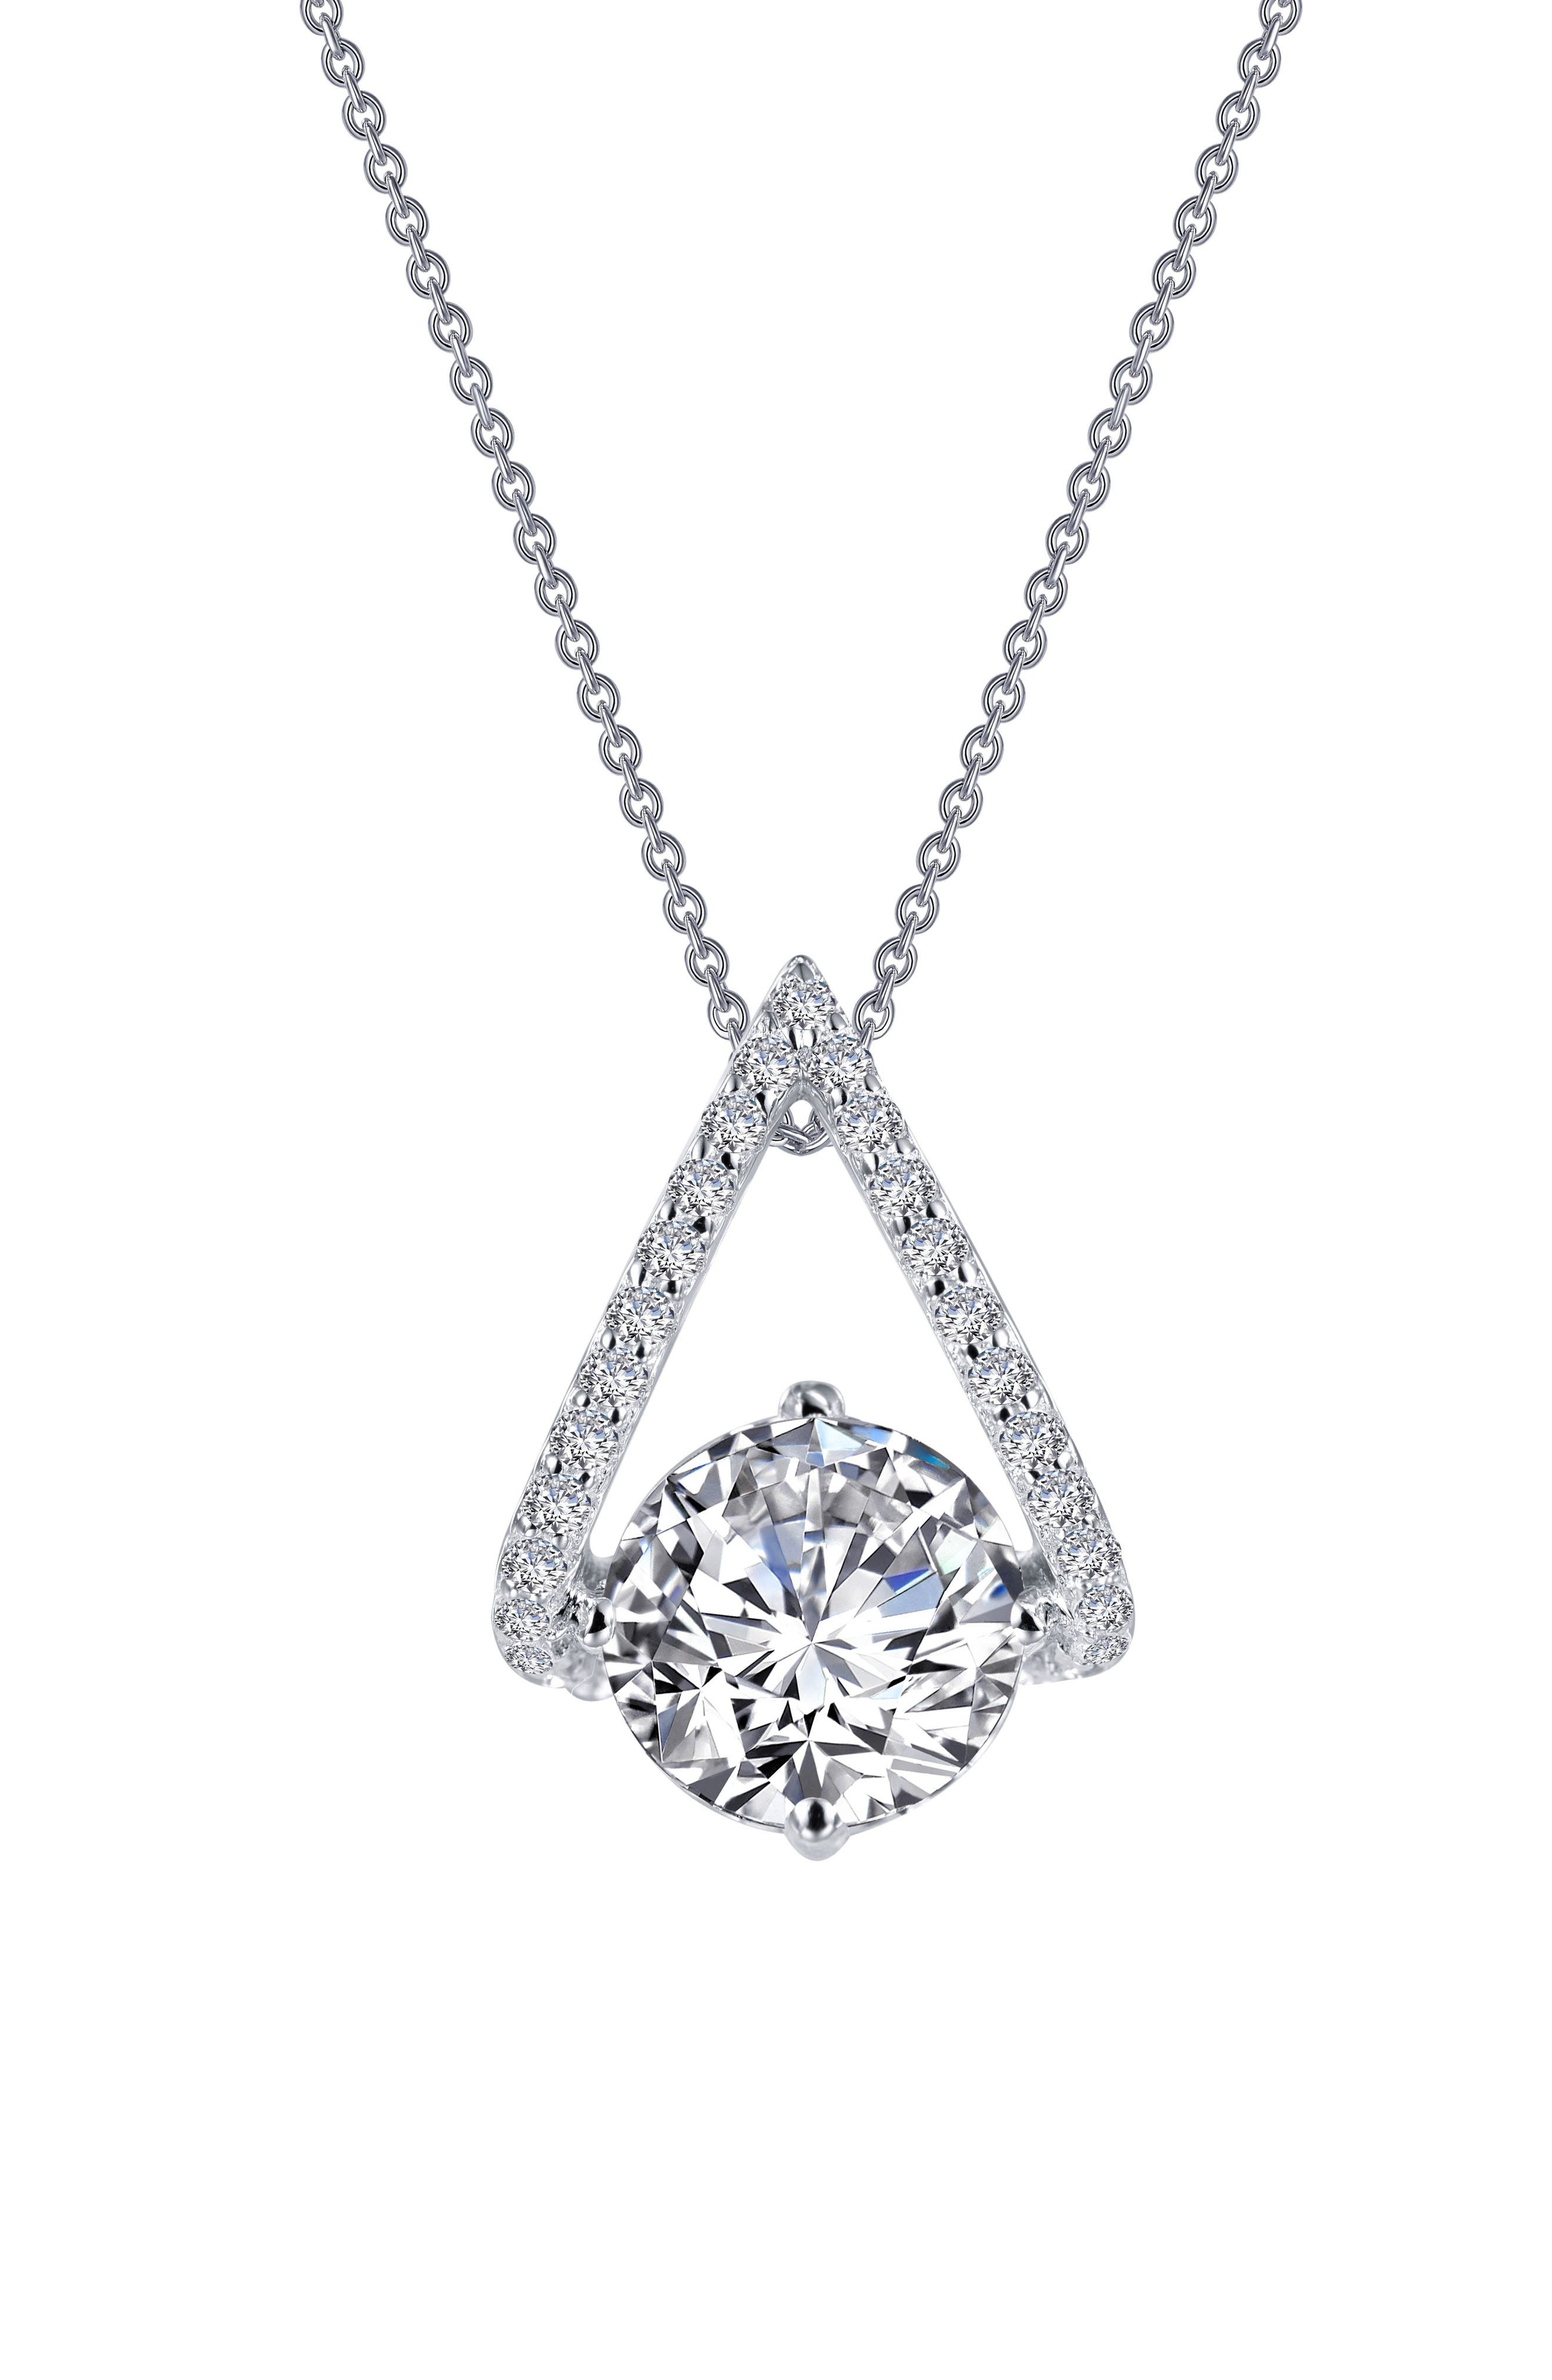 Simulated Diamond Pendant Necklace,                             Alternate thumbnail 3, color,                             Silver/ Clear